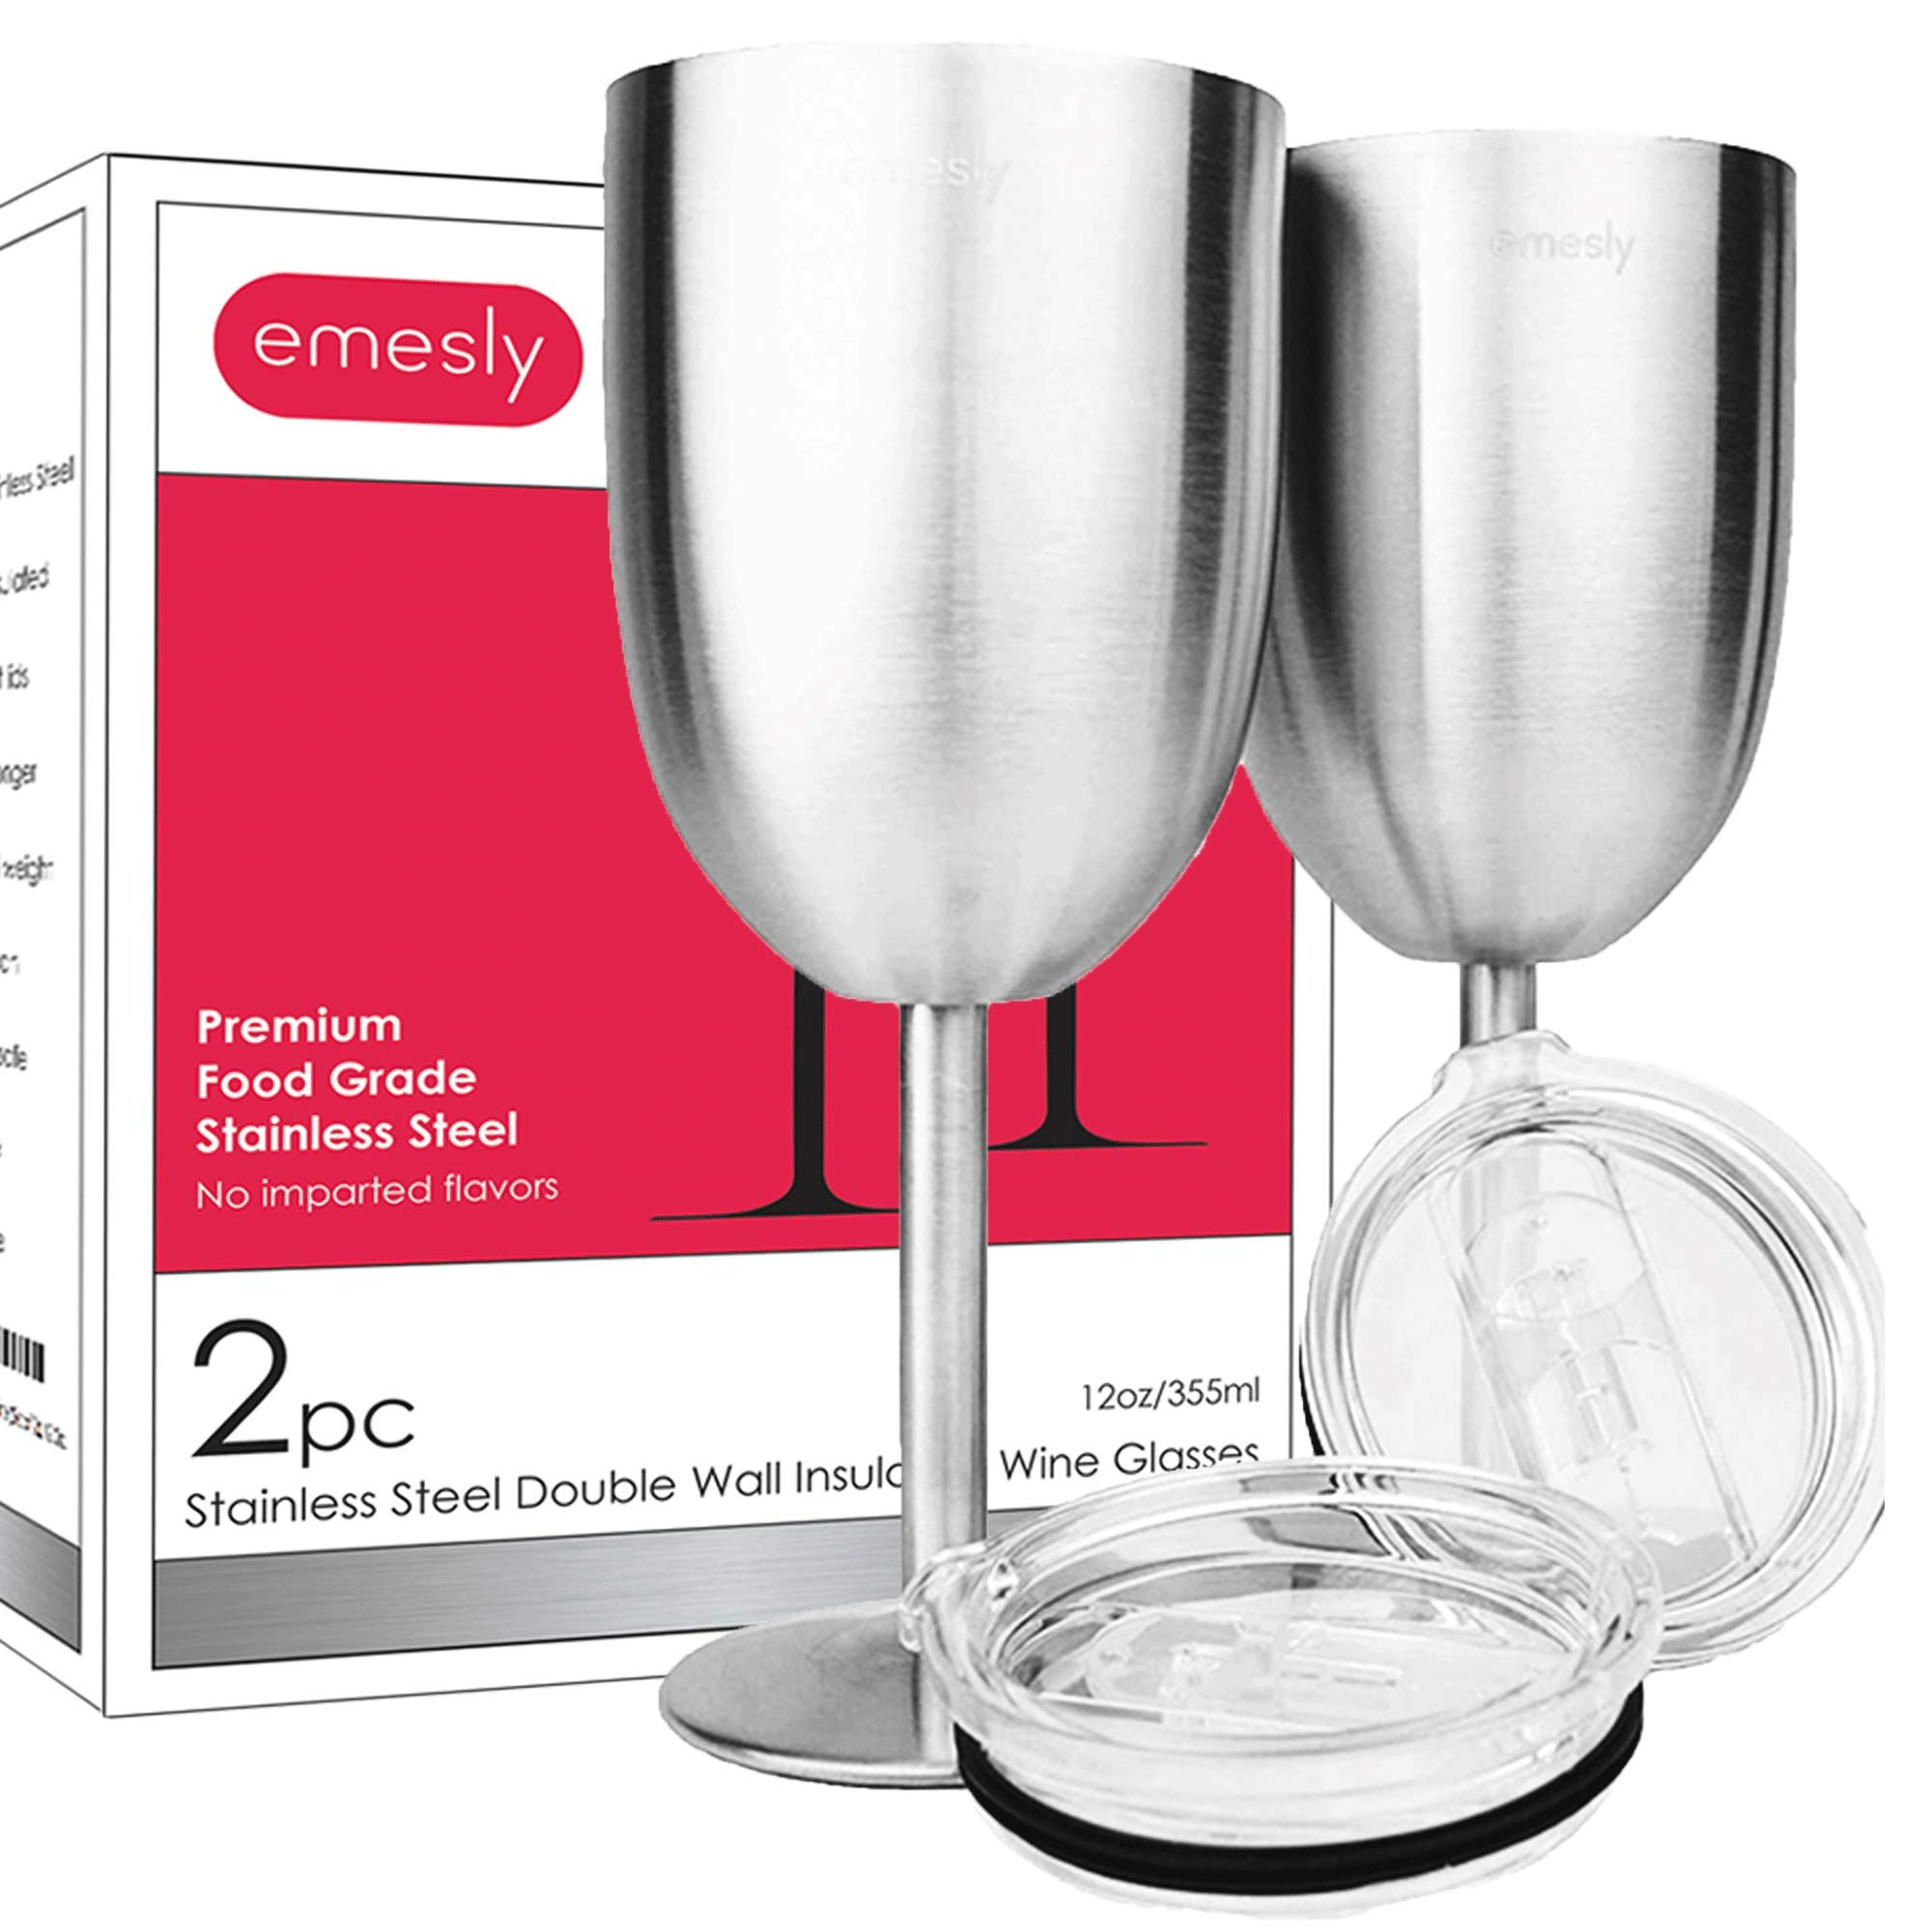 Stainless Steel Wine Glasses Double-Walled Insulated (Set of 2) Unbreakable Goblets; Metal Stemmed Wine Tumblers with Leak Resistant Lids for Red & White Wine, 12 Oz.